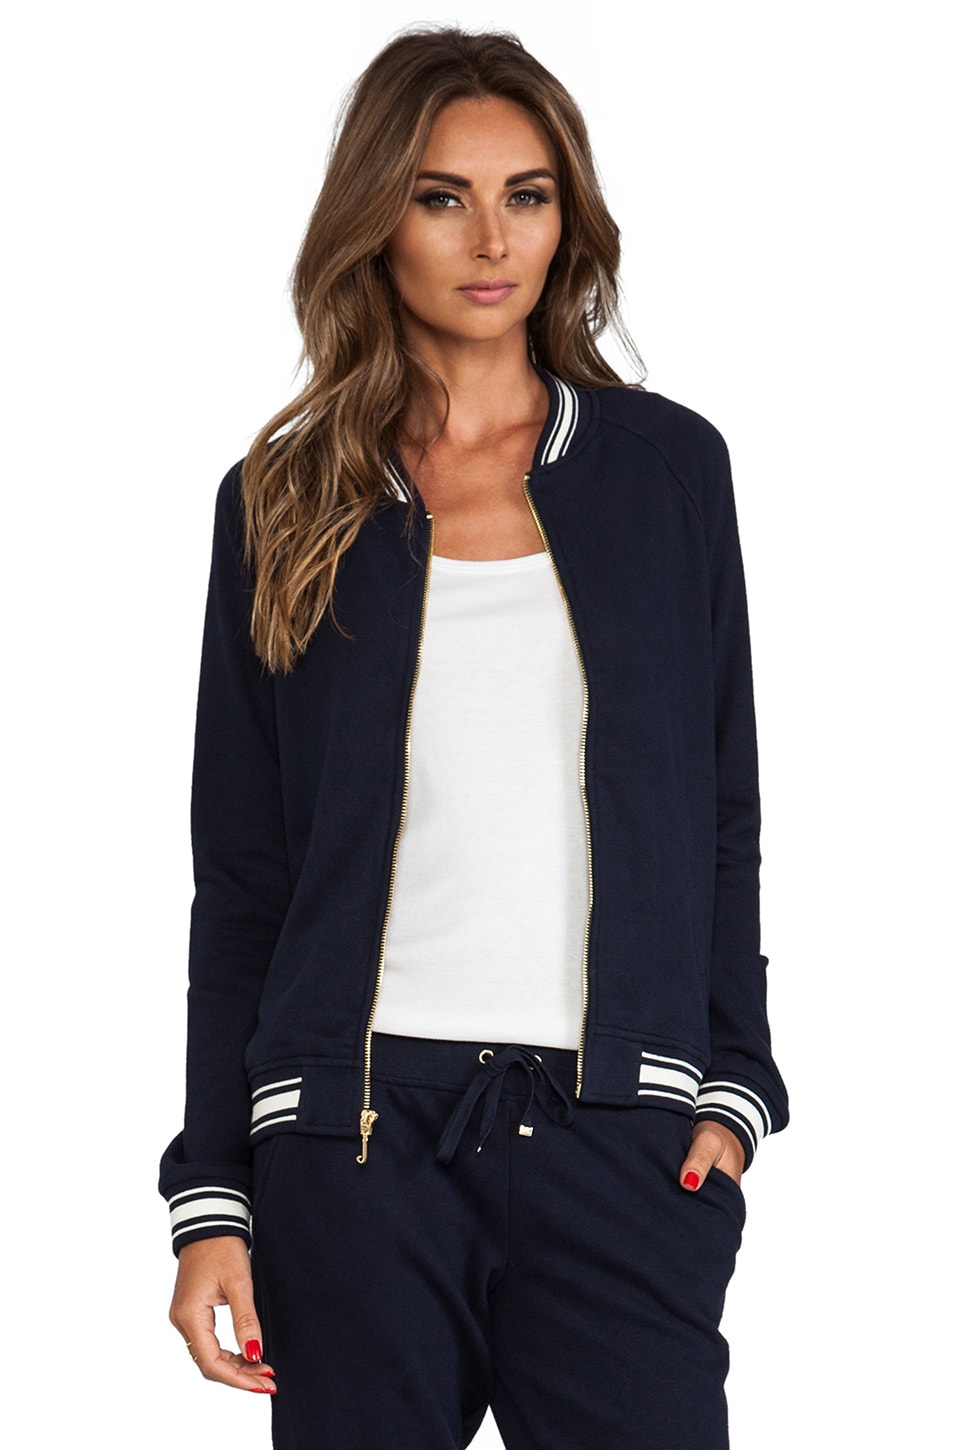 Juicy Couture Racer Rib Bomber Jacket in Regal